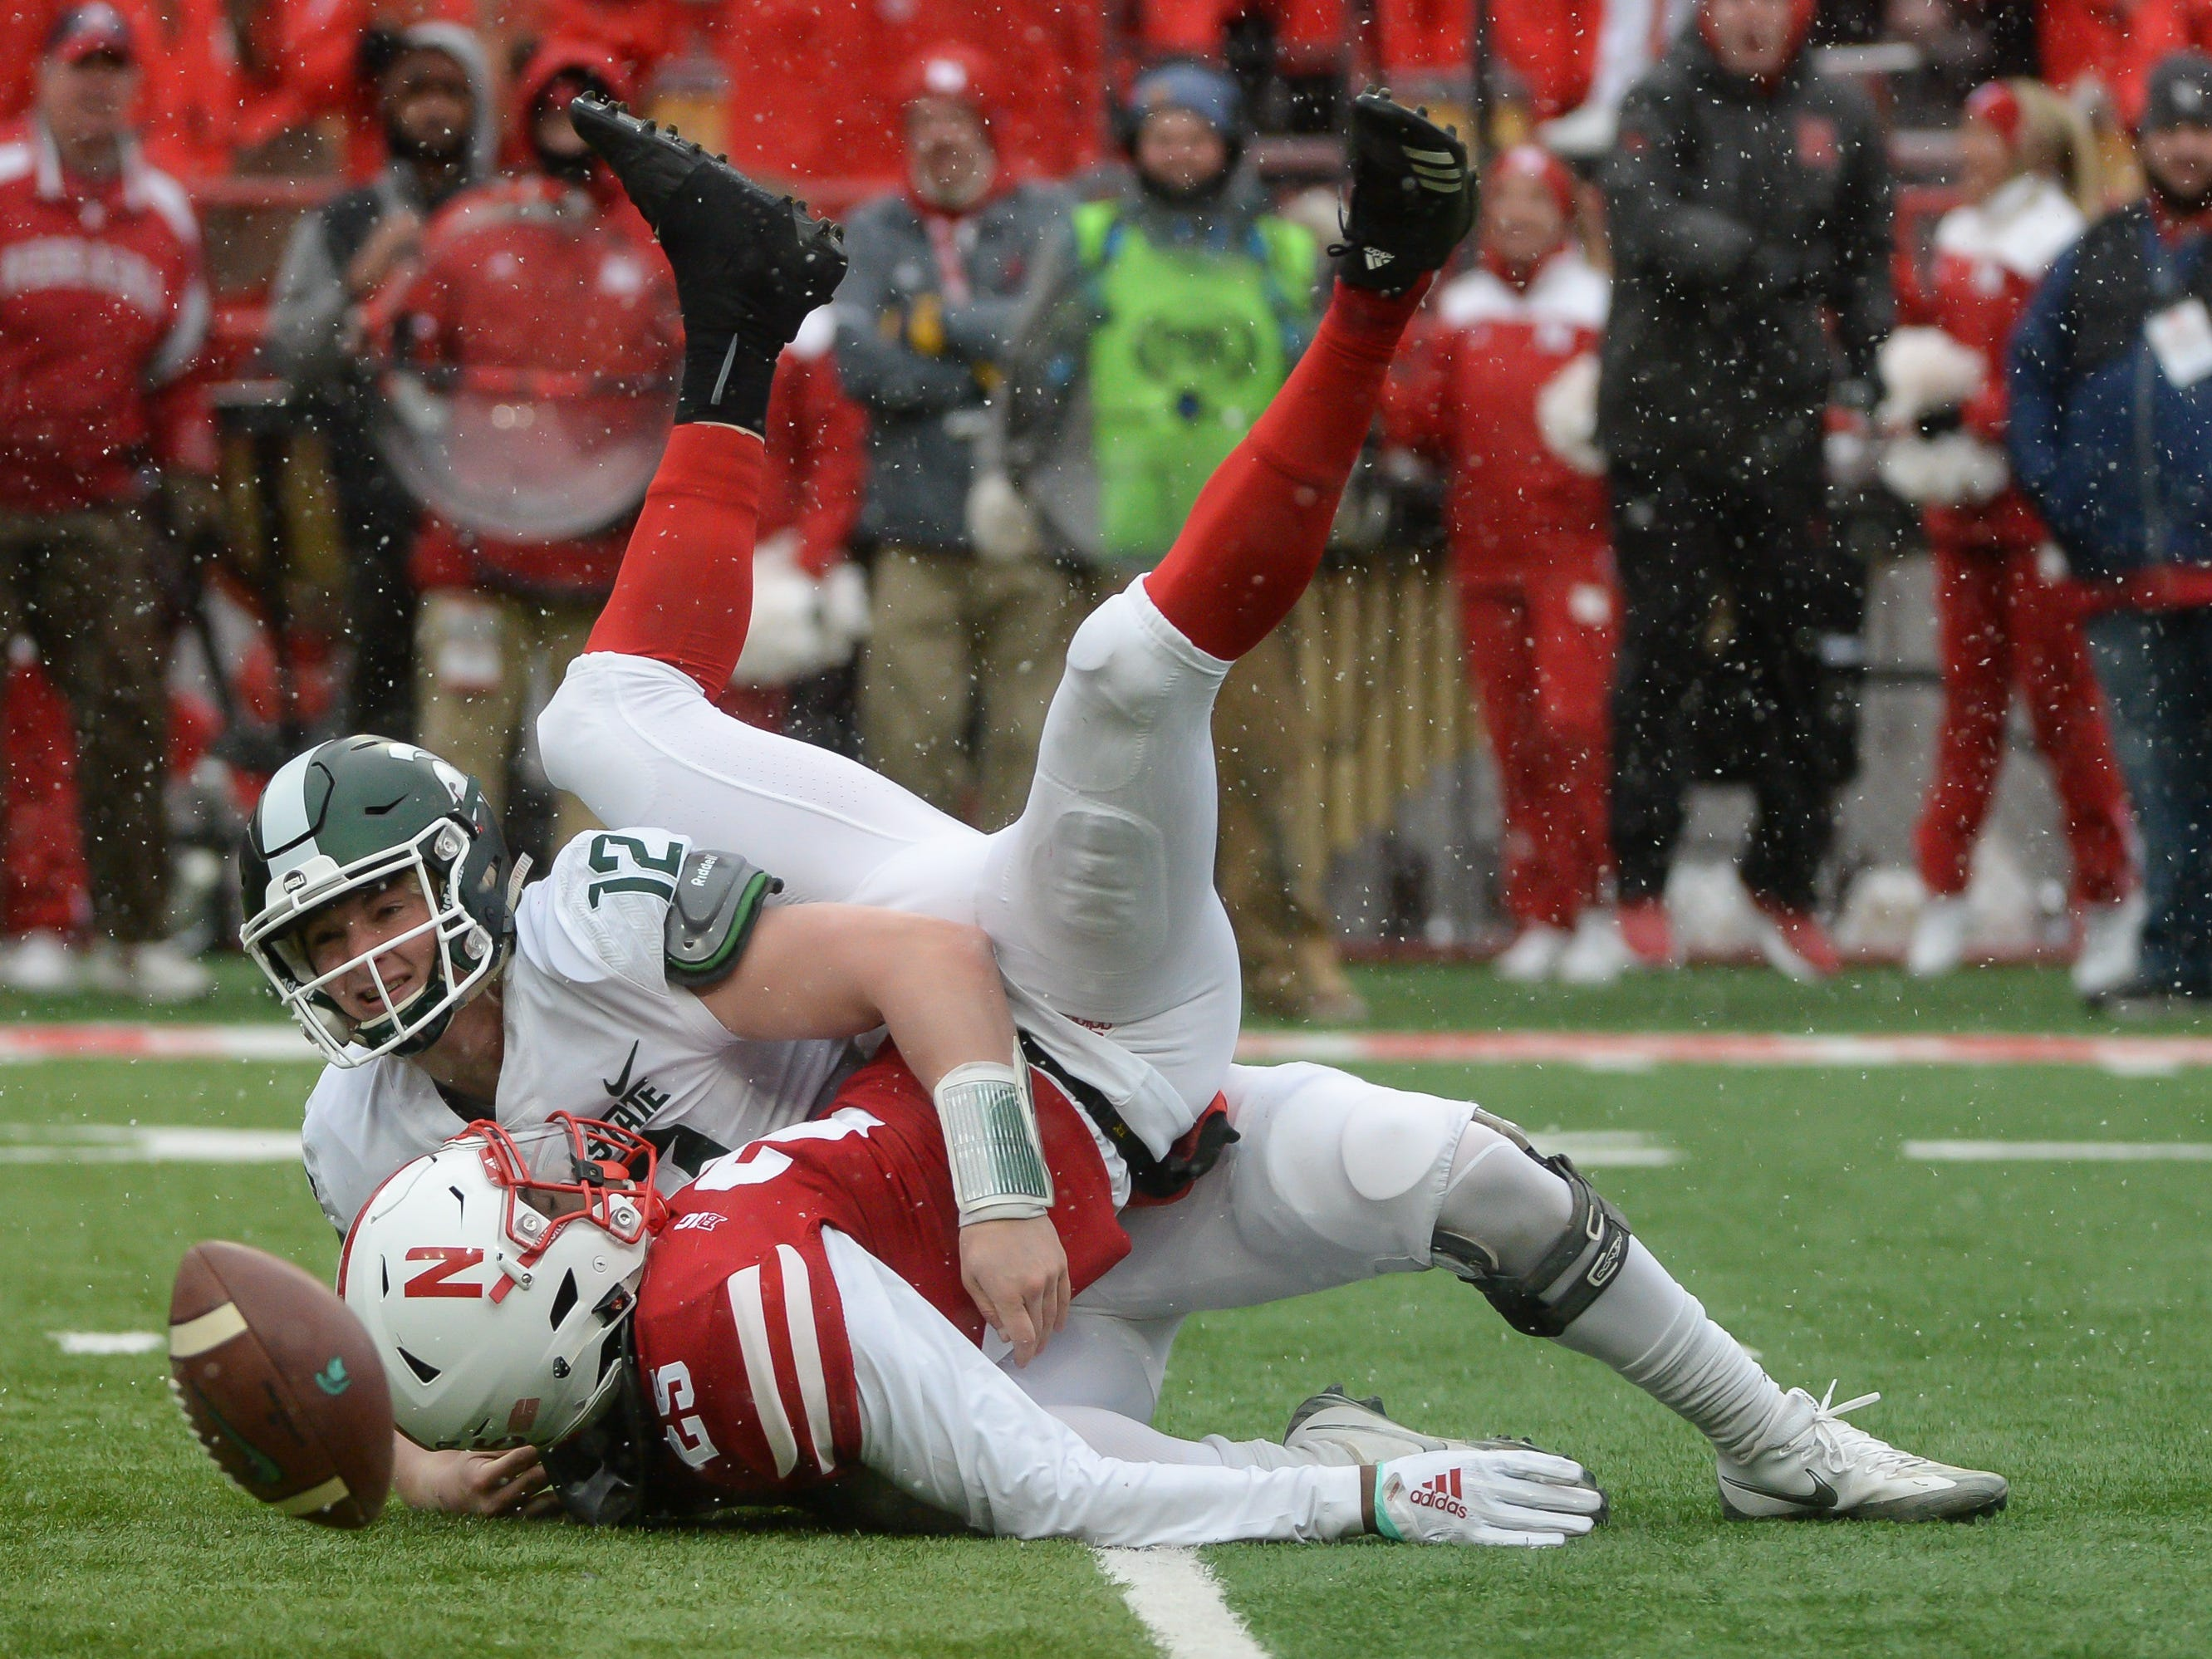 Michigan State quarterback Rocky Lombardi fumbles on a sack by Nebraska's Antonio Reed in the second half at Memorial Stadium on Nov. 17, 2018 in Lincoln, Neb.